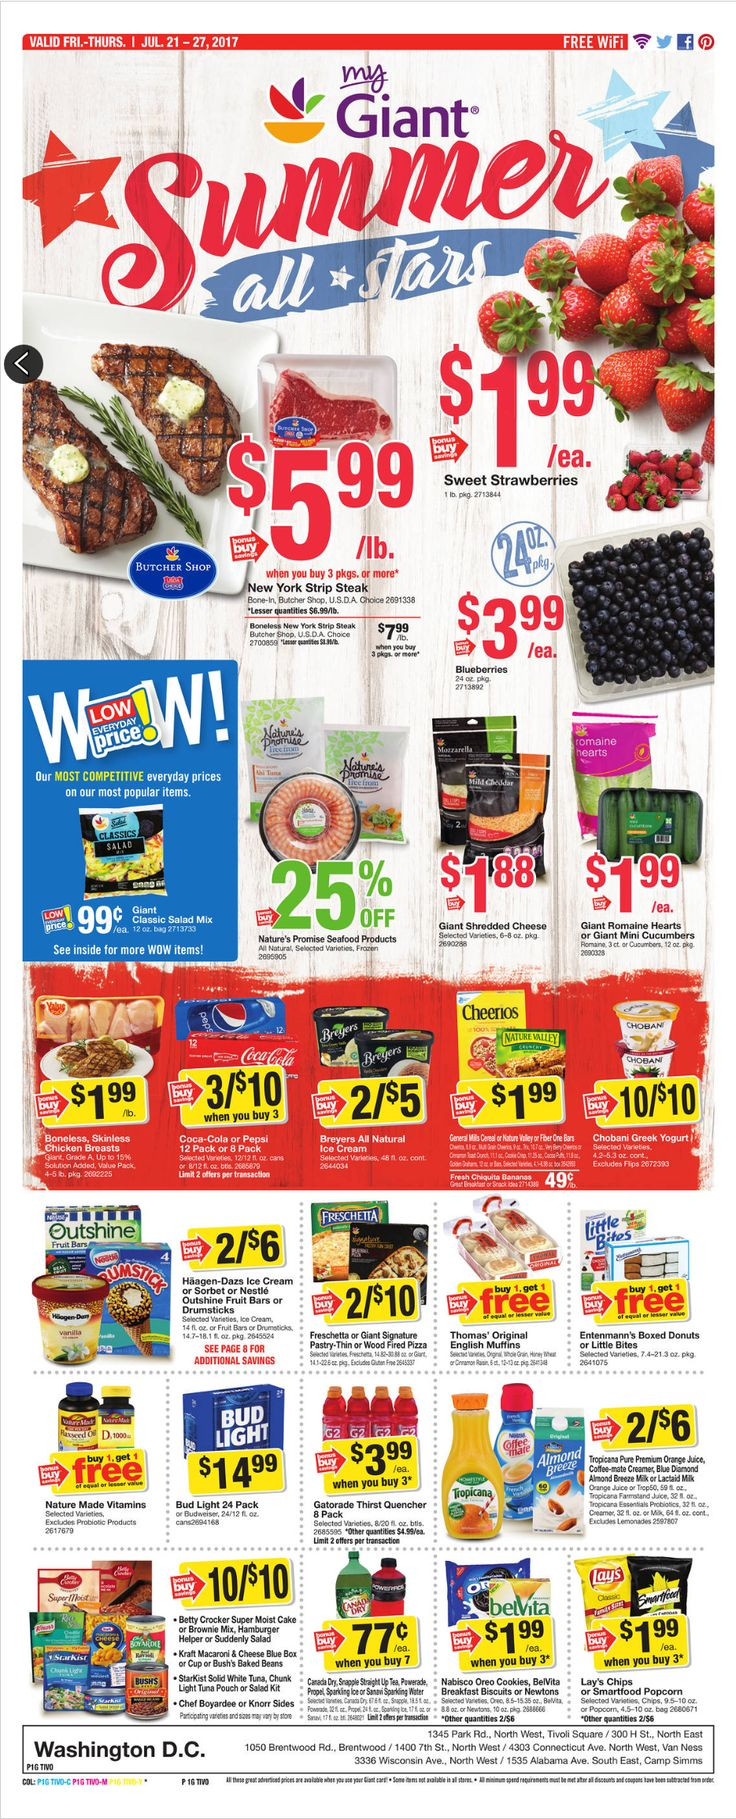 Giant Food Weekly Ad July 21 - 27, 2017 - http://www.olcatalog.com/grocery/giant-food-weekly-ad.html